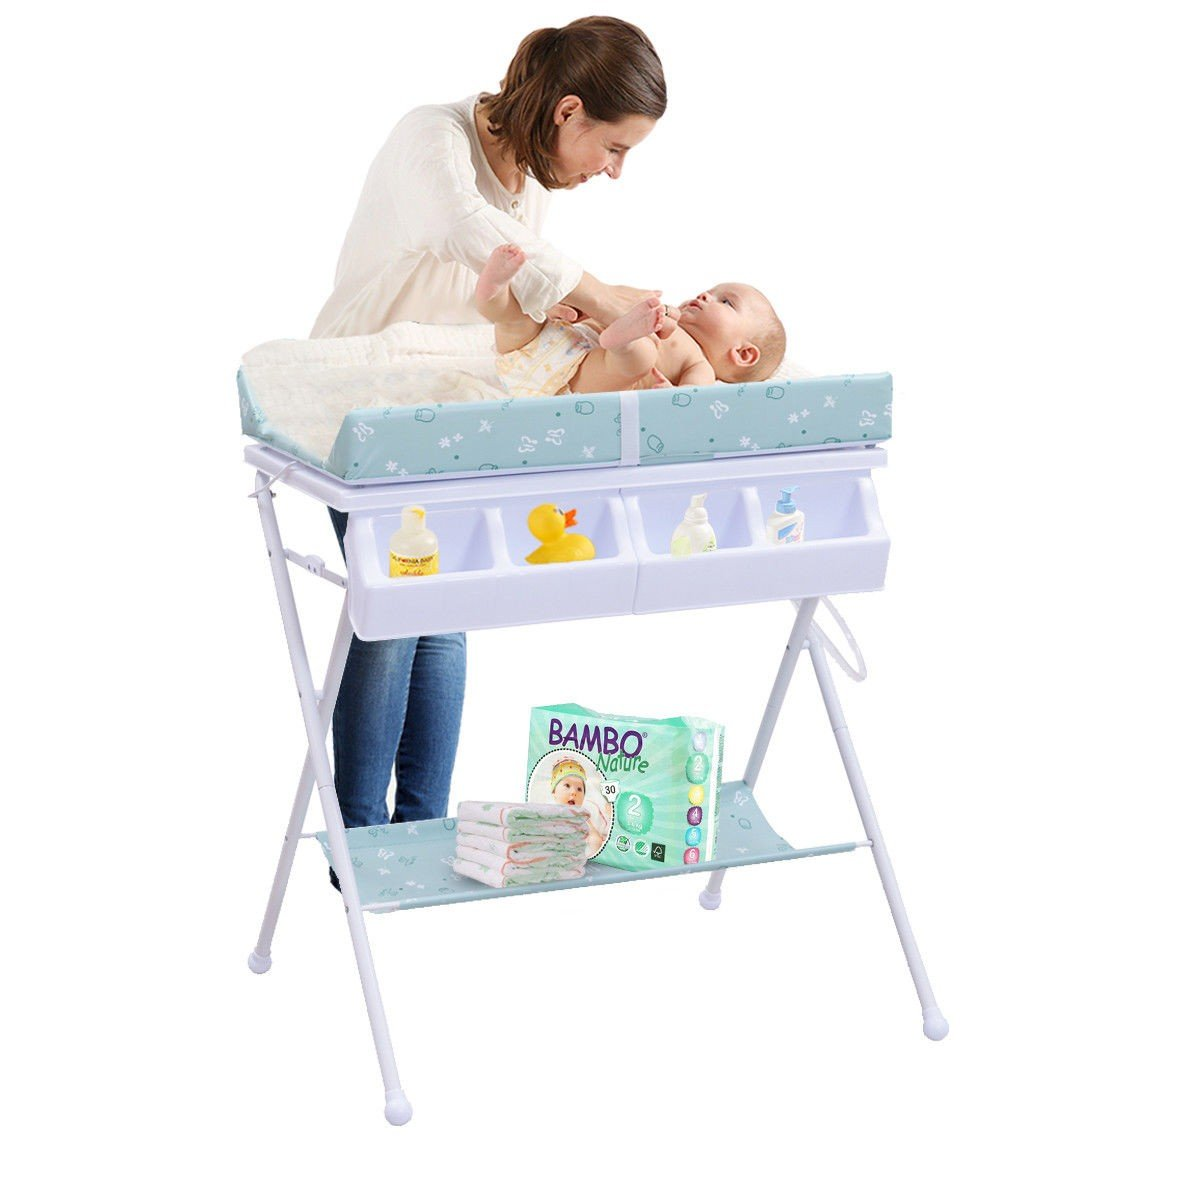 MD Group Baby Changing Table Foldable Steel Green Cushioned Infant Bath Diaper Storage